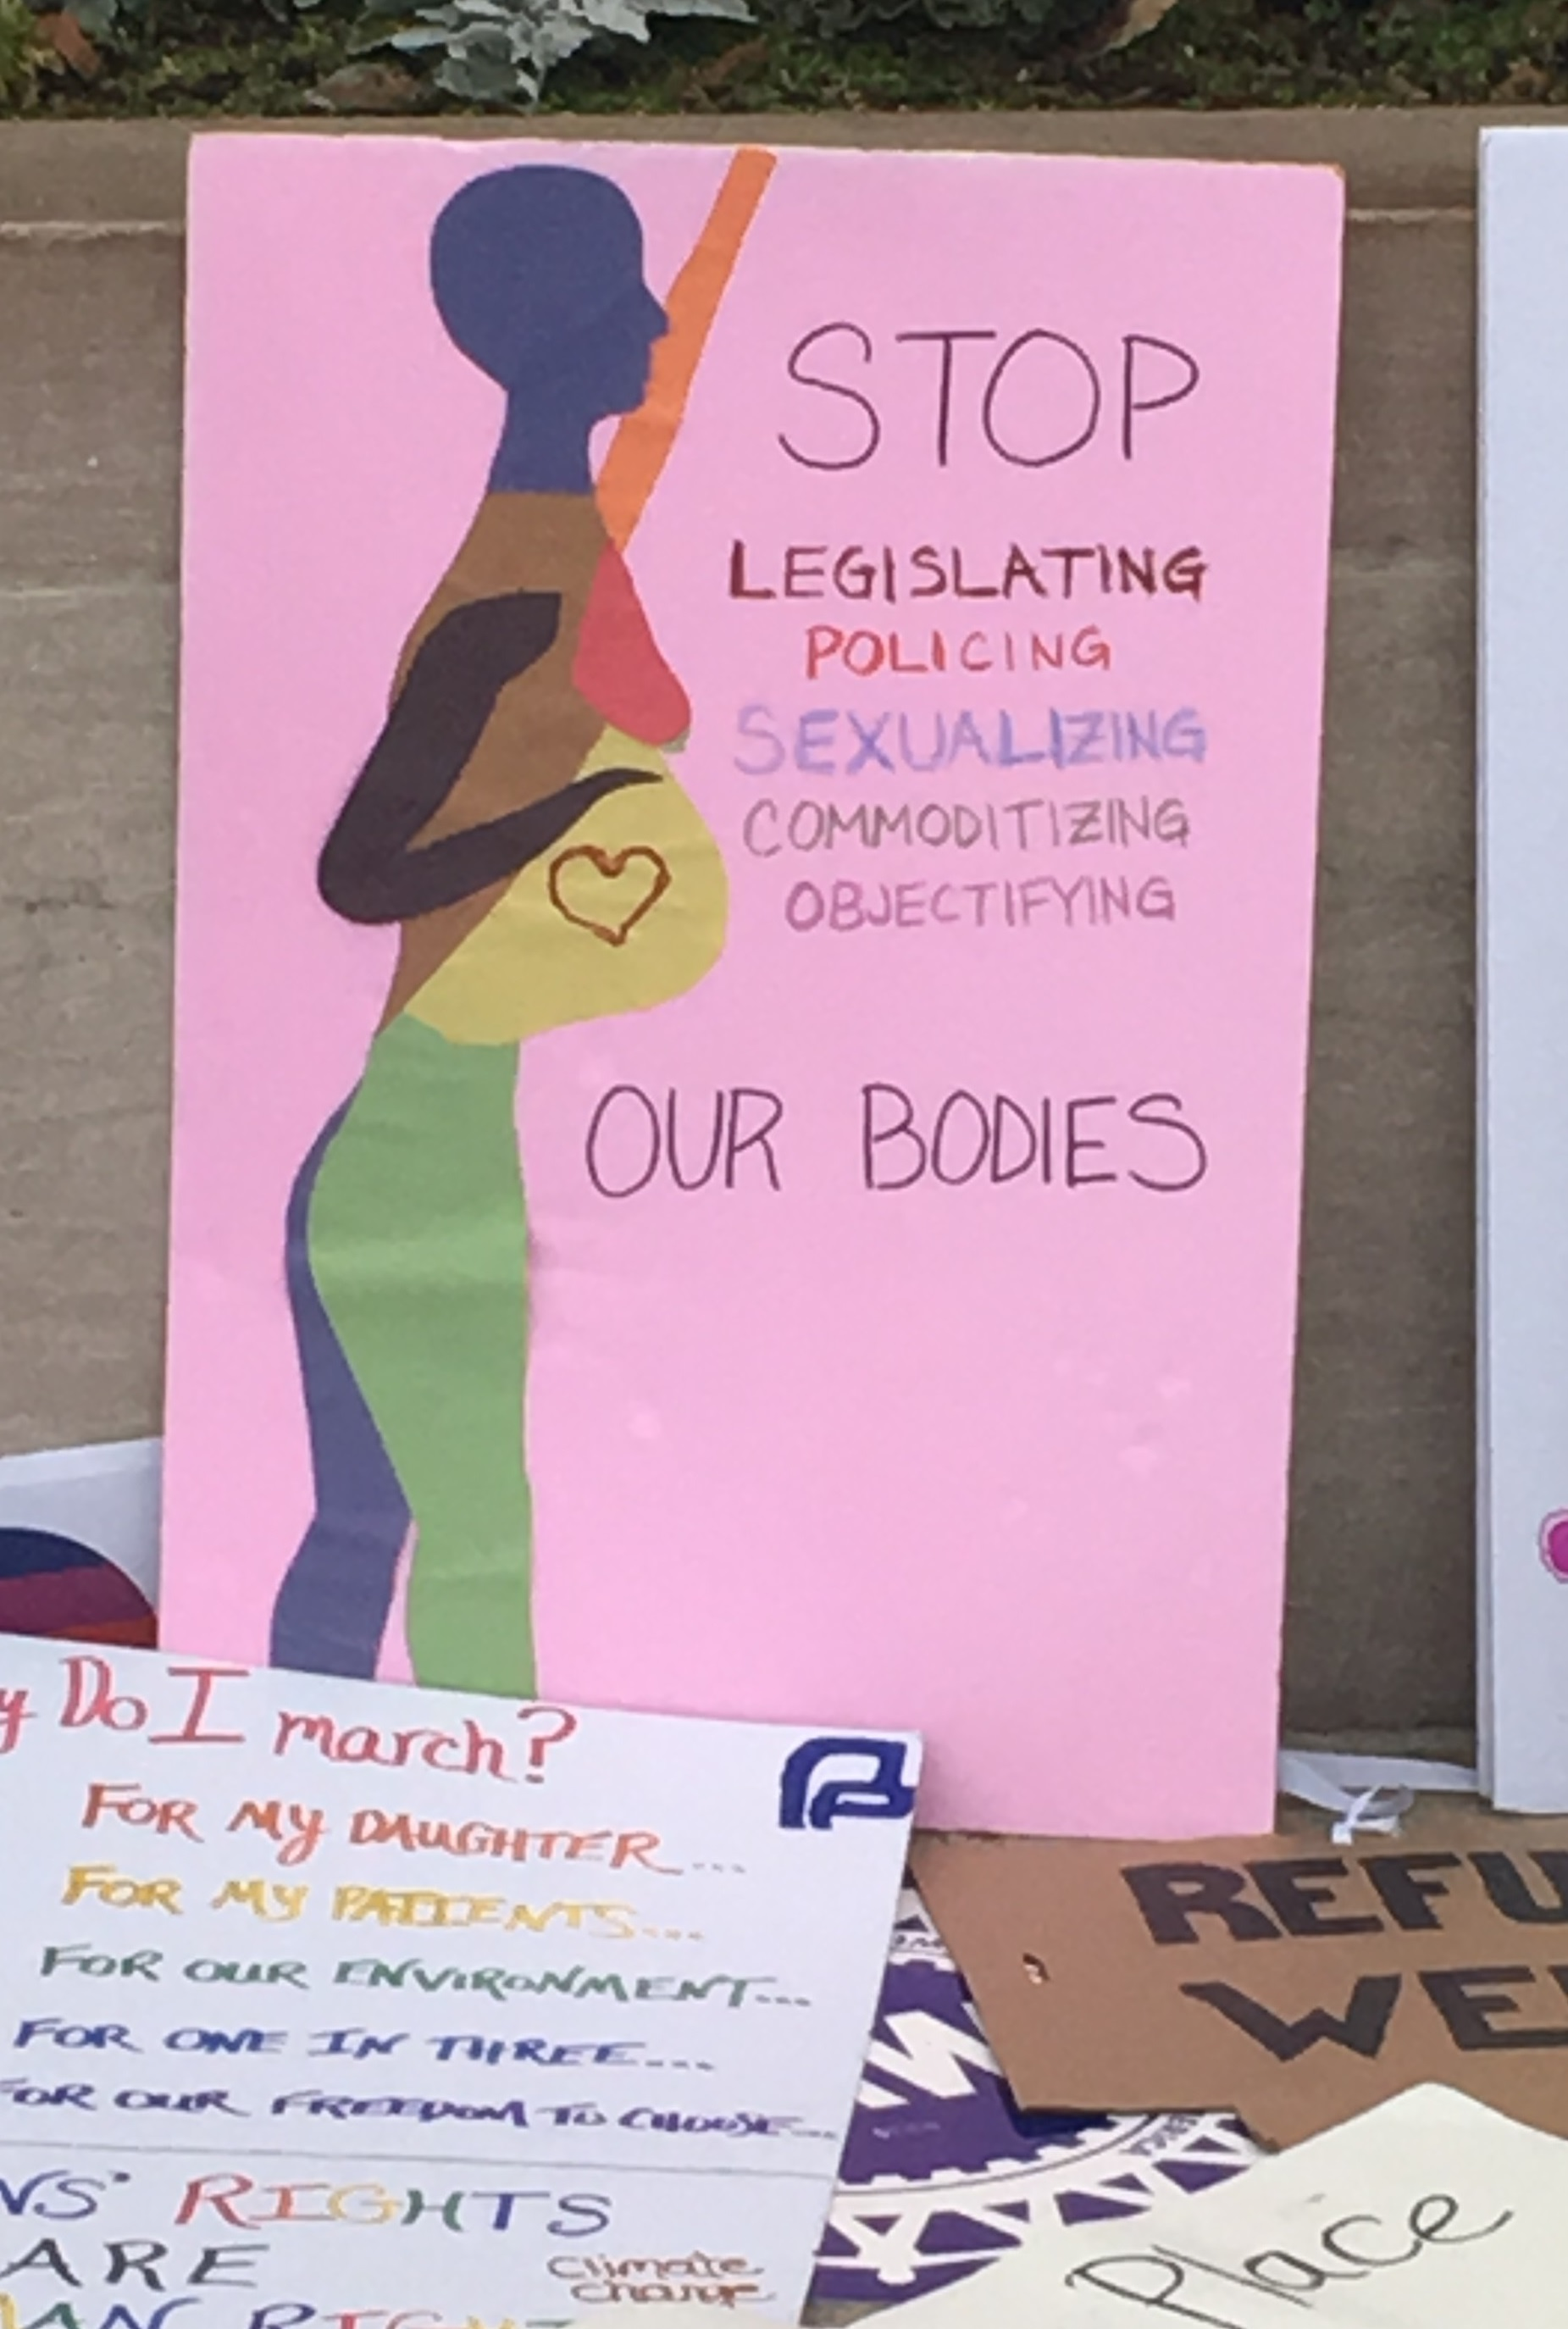 A homemade sign displayed during a 2017 women's march.